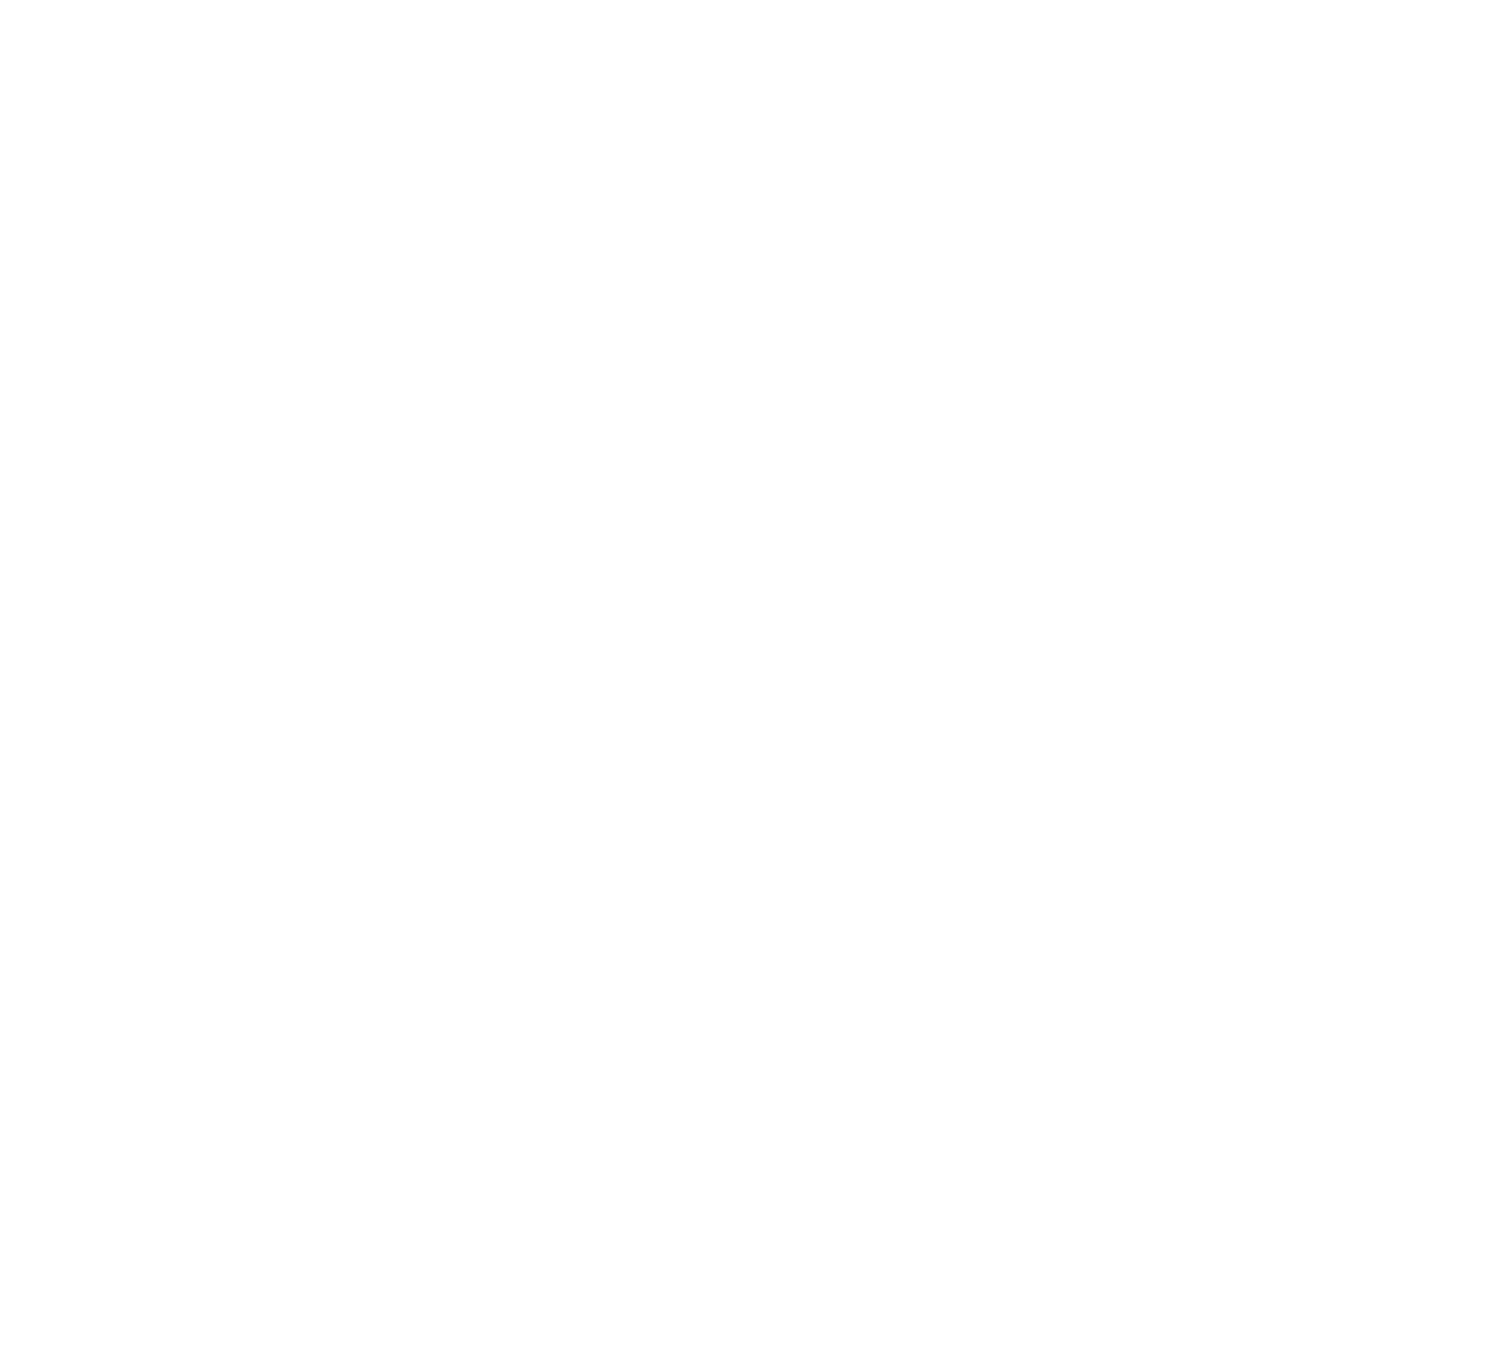 2Polarities